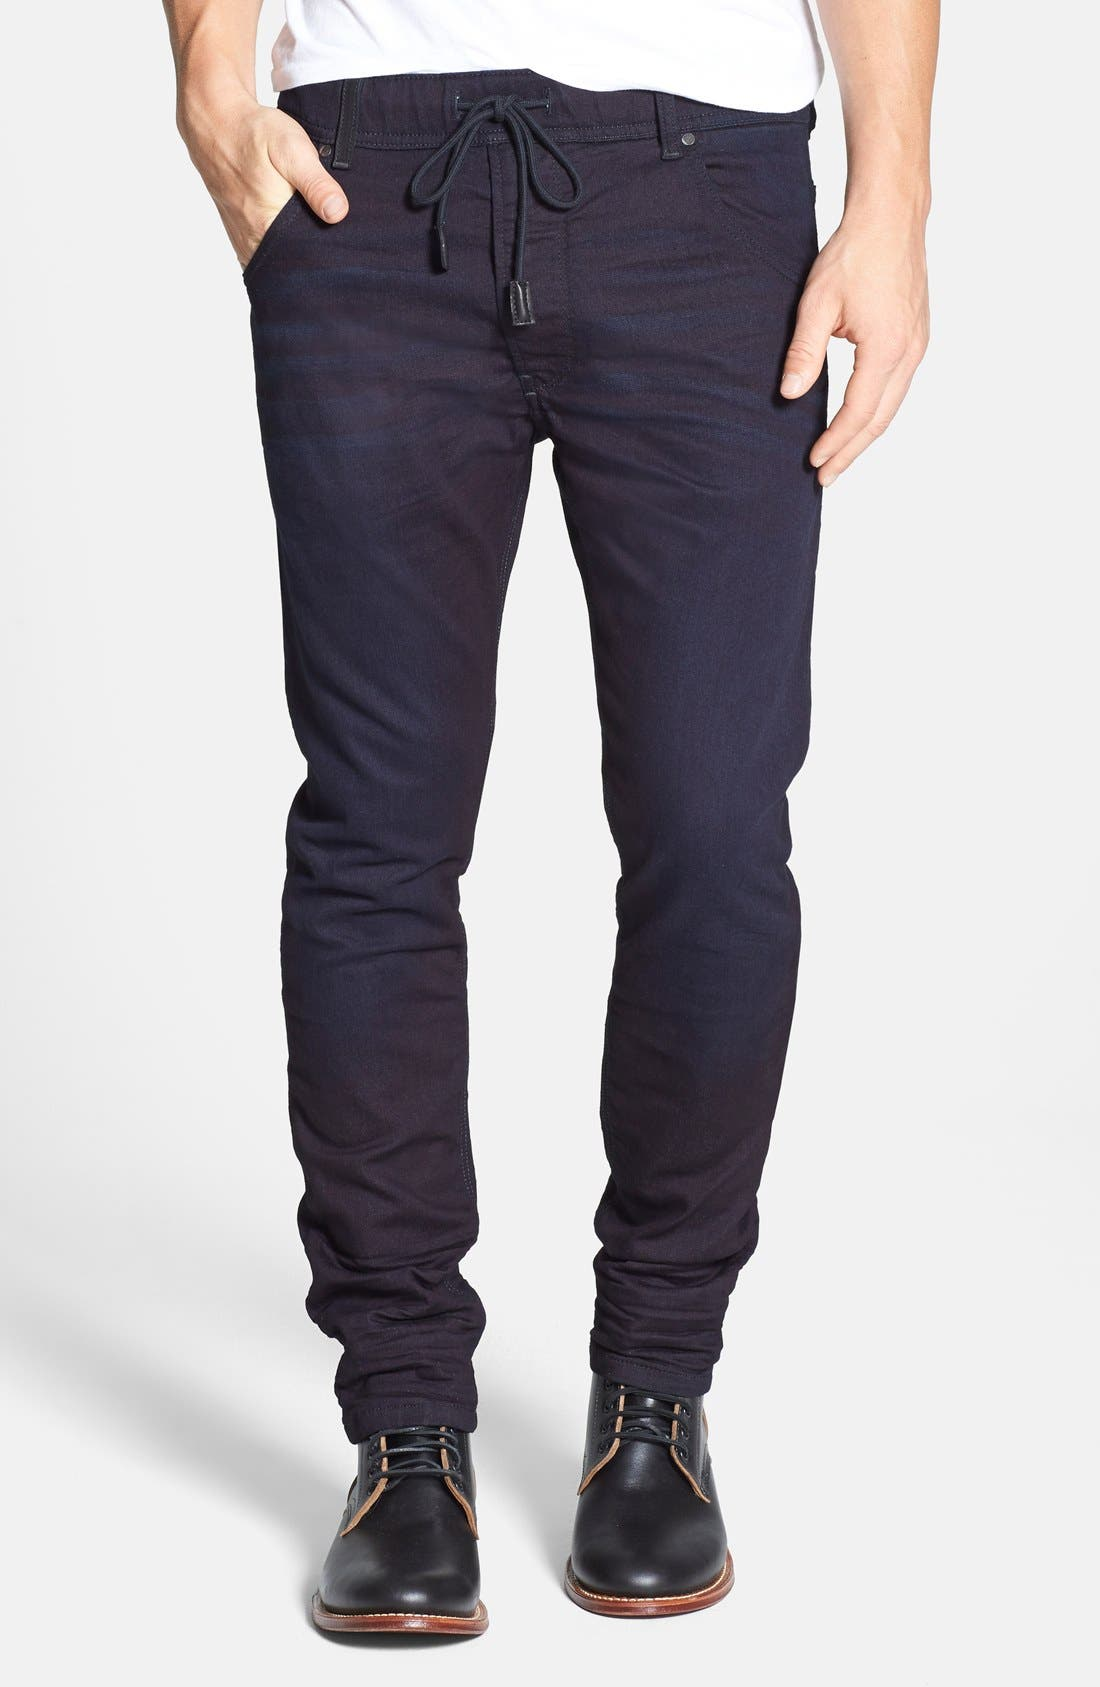 DIESEL<SUP>®</SUP>, Krooley Jogg Slouchy Skinny Fit Jeans, Main thumbnail 1, color, 0829P